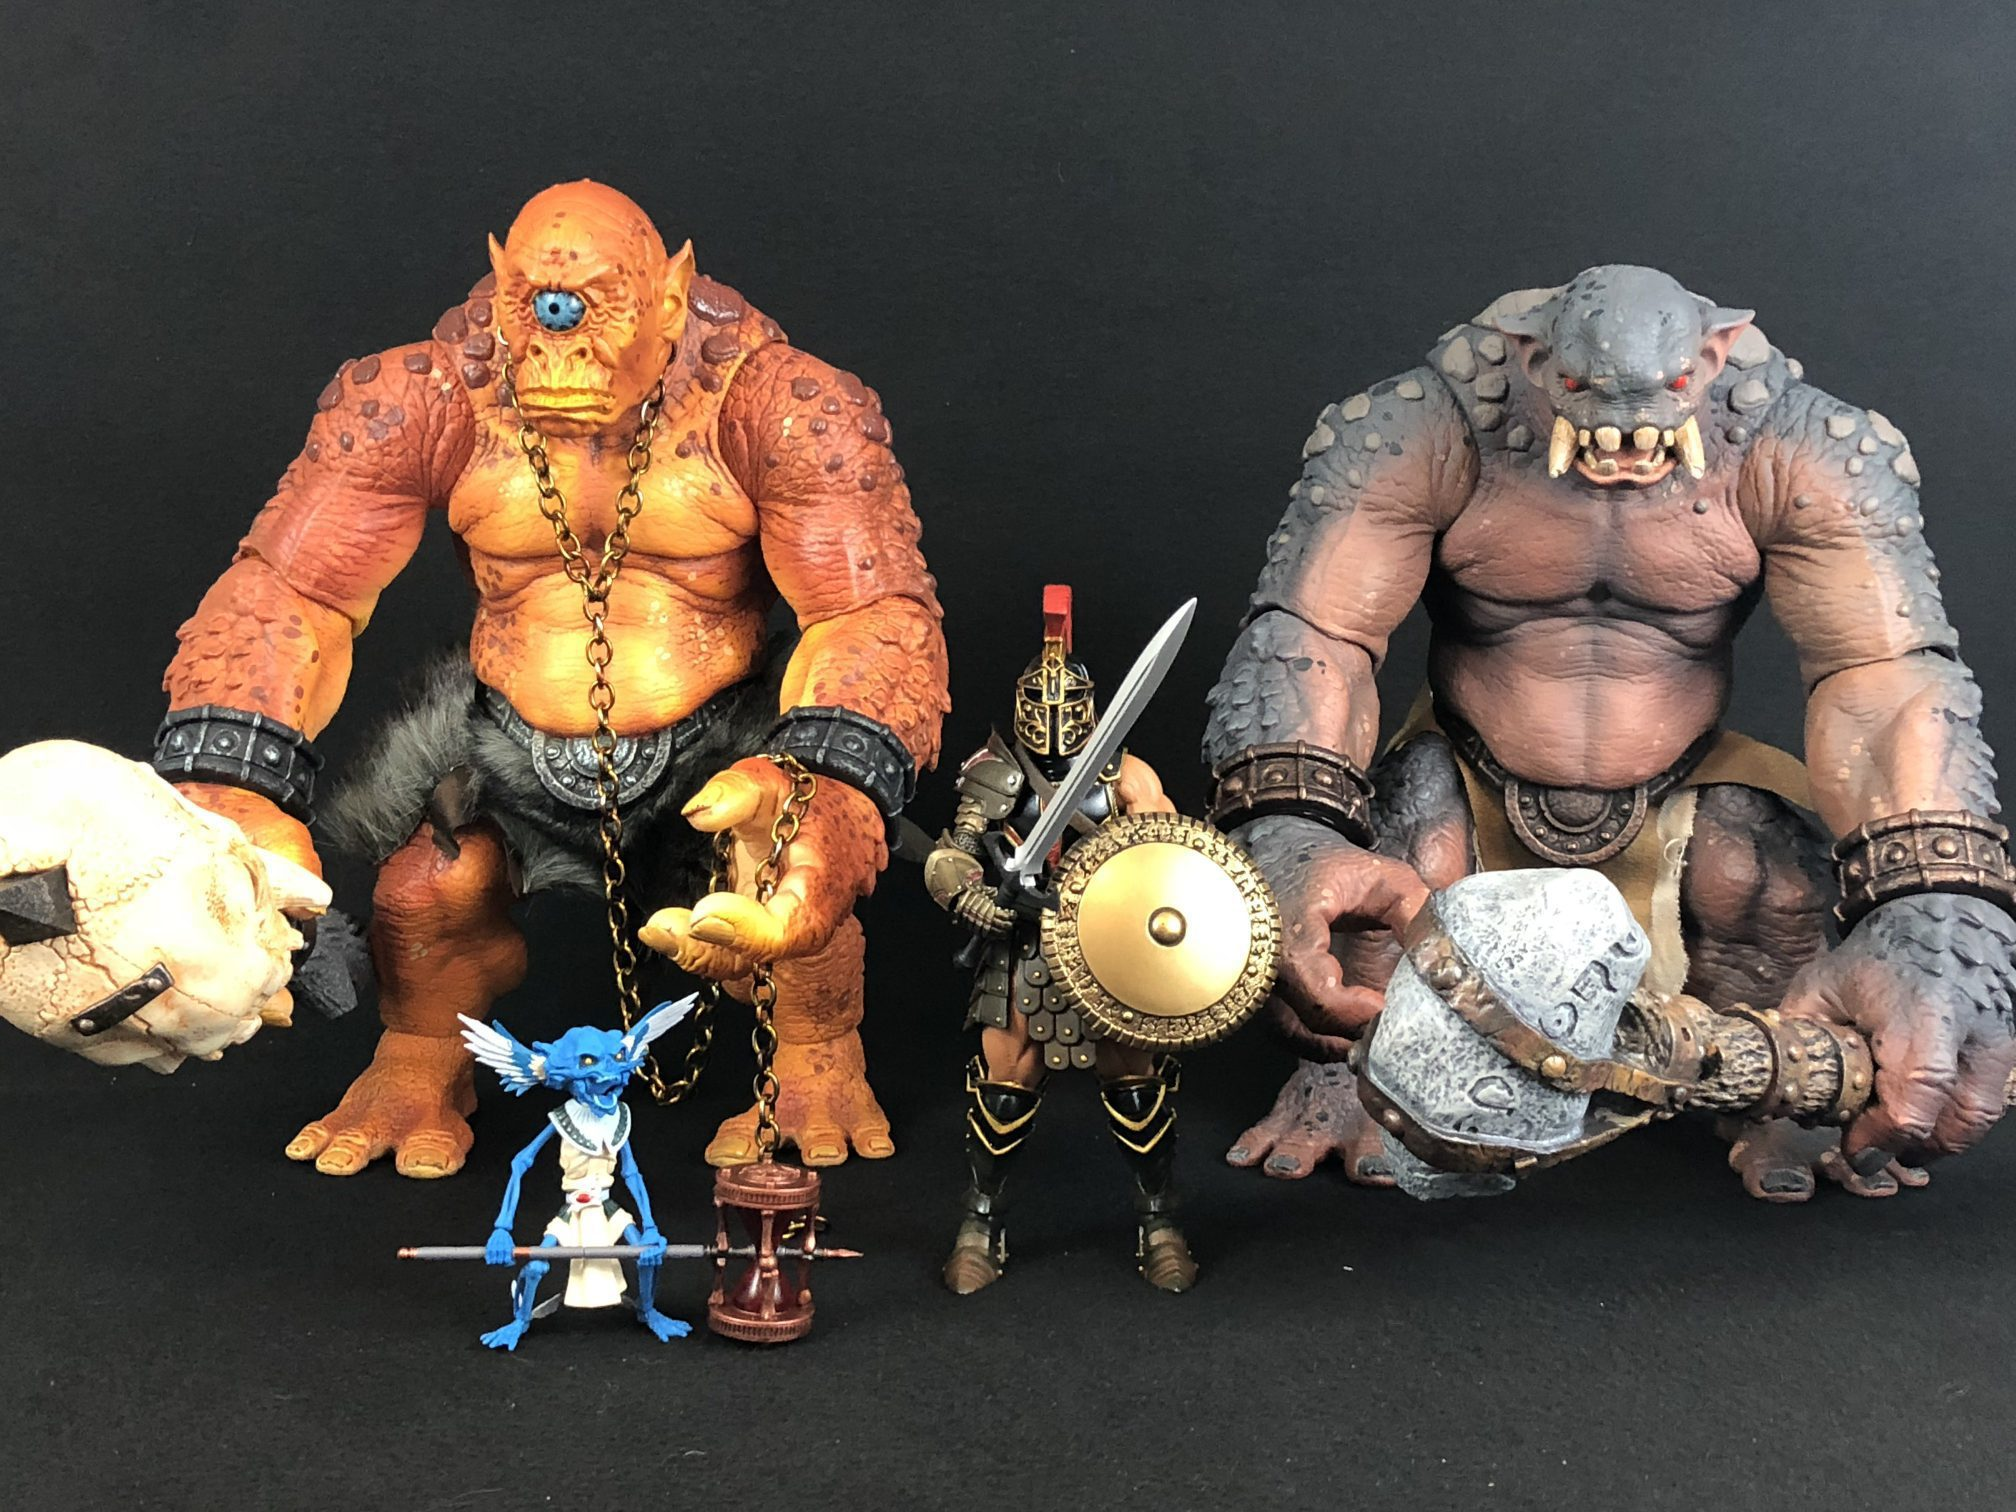 Mythic Legions Figures by Four Horsemen Studios (Rahmulus Review)